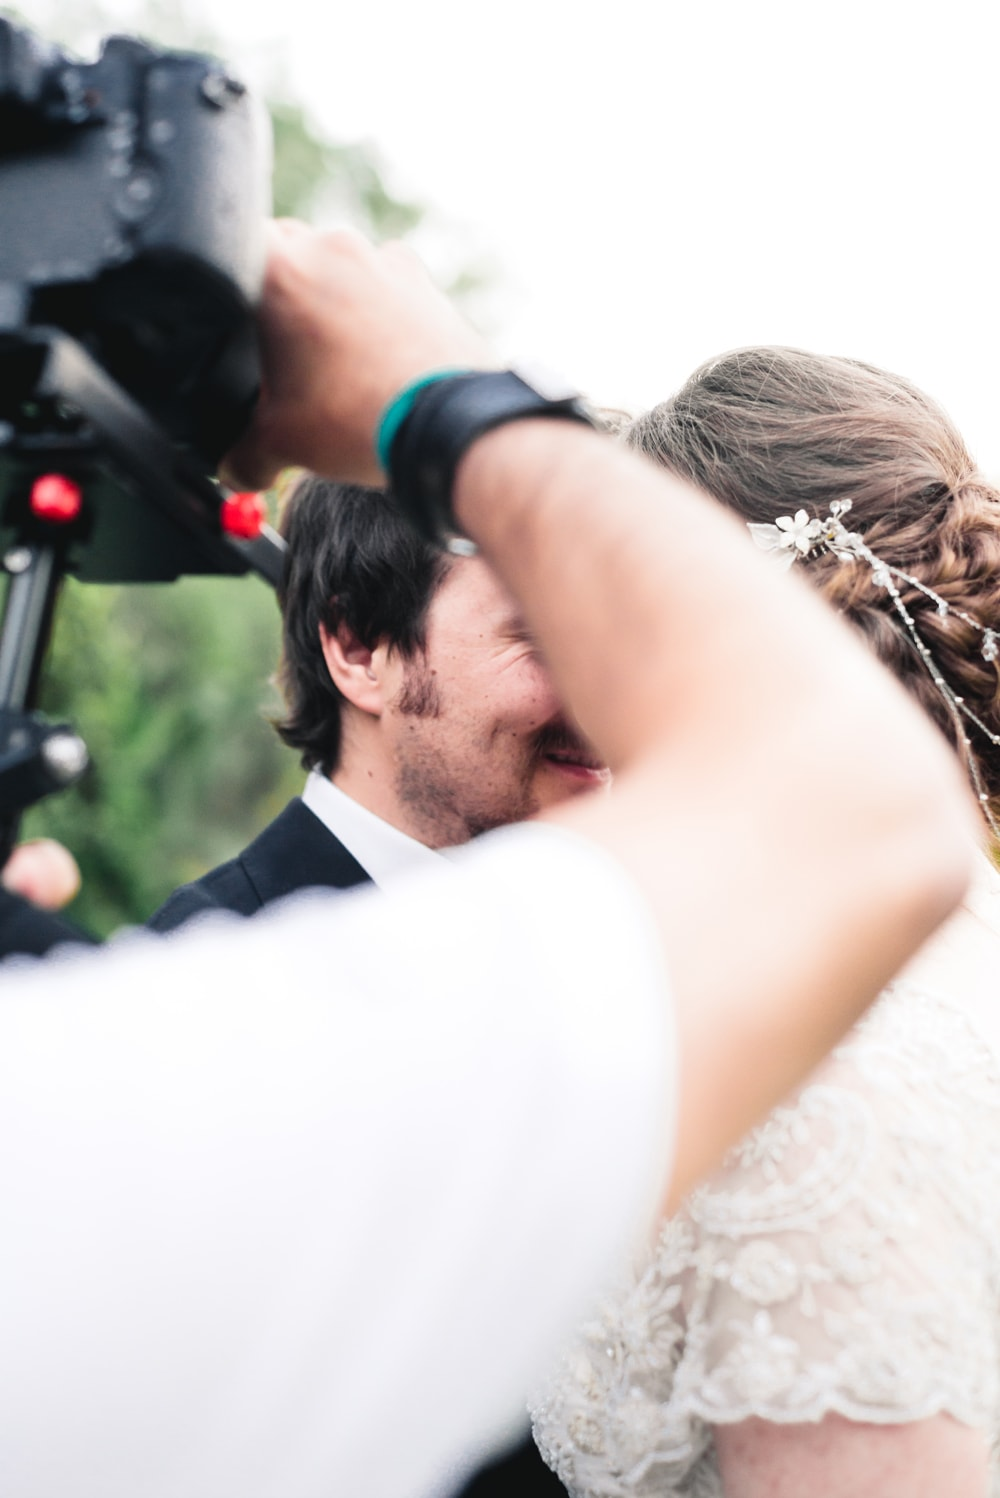 Videos de matrimonio en formato cine - Ampersand Wedding Films - Cinematografía de bodas - Chile